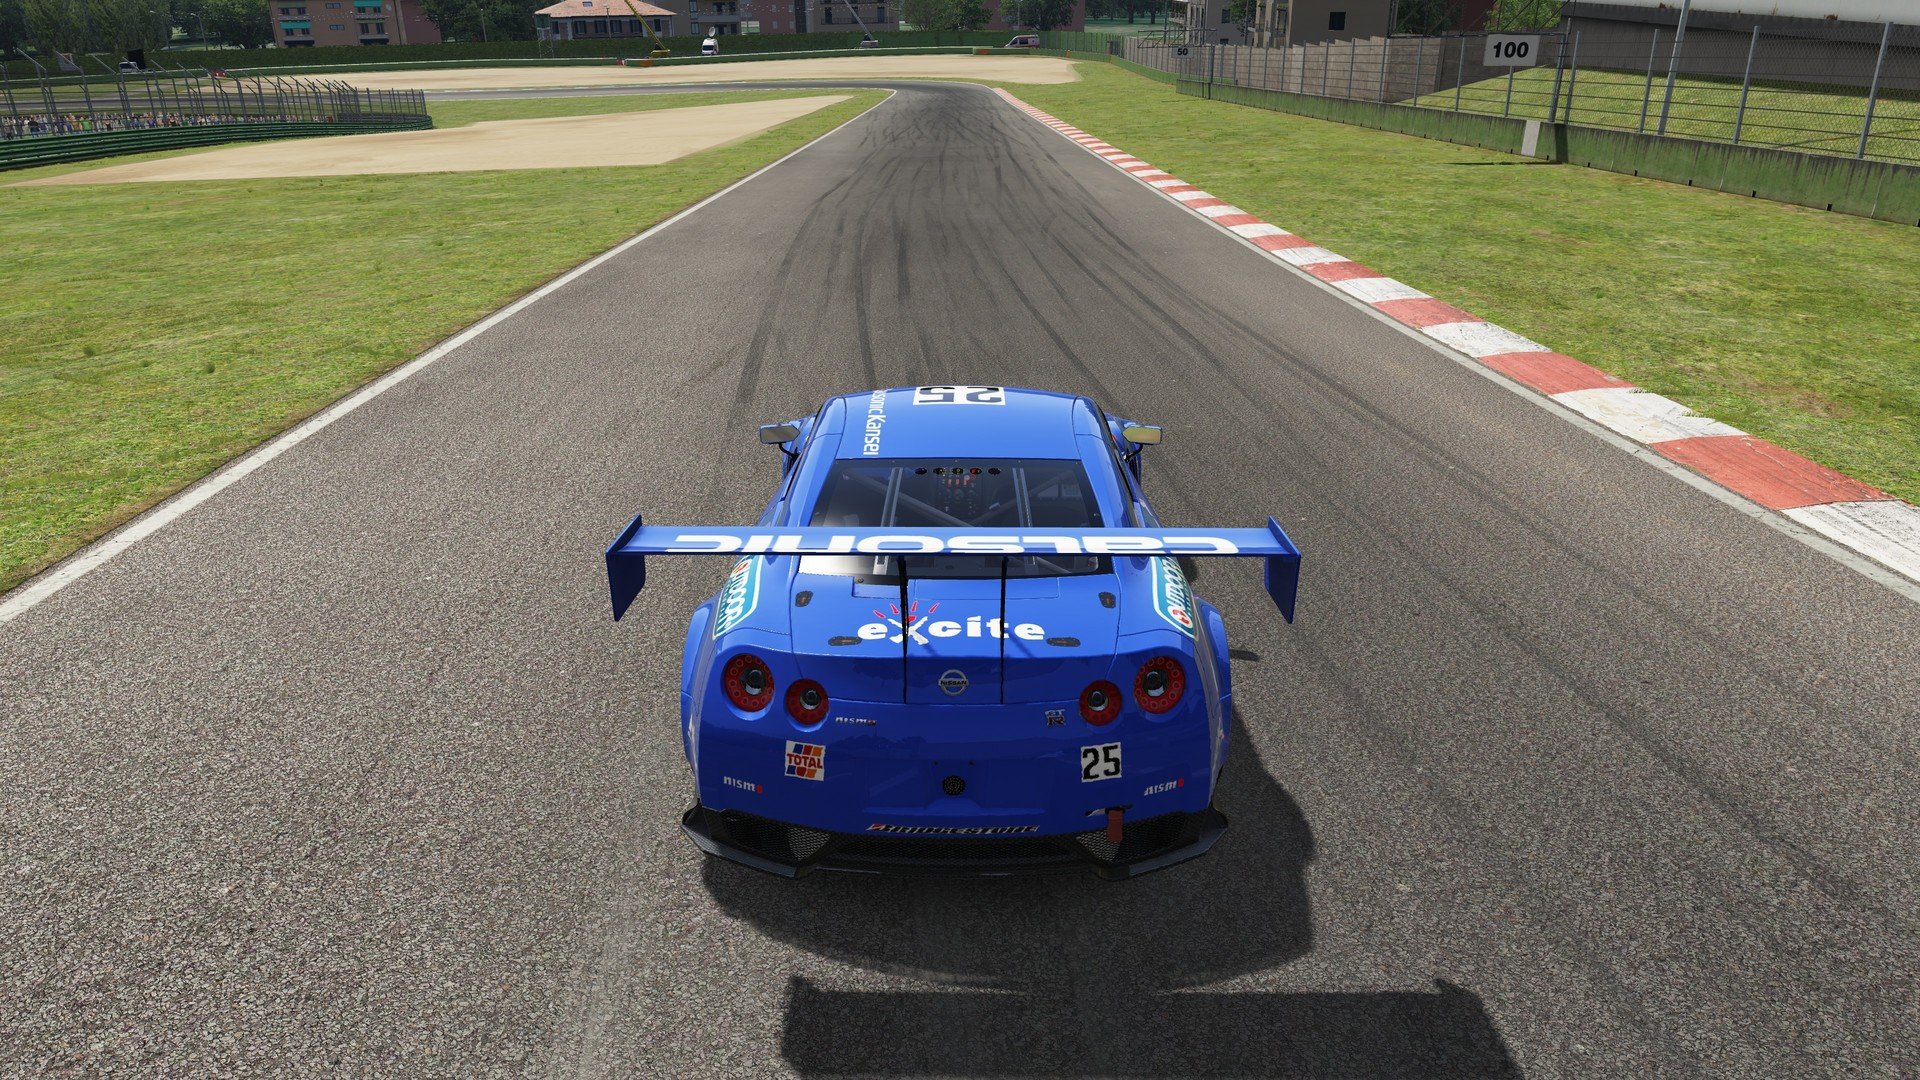 Screenshot_ks_nissan_gtr_gt3_imola_24-10-116-15-35-51.jpg